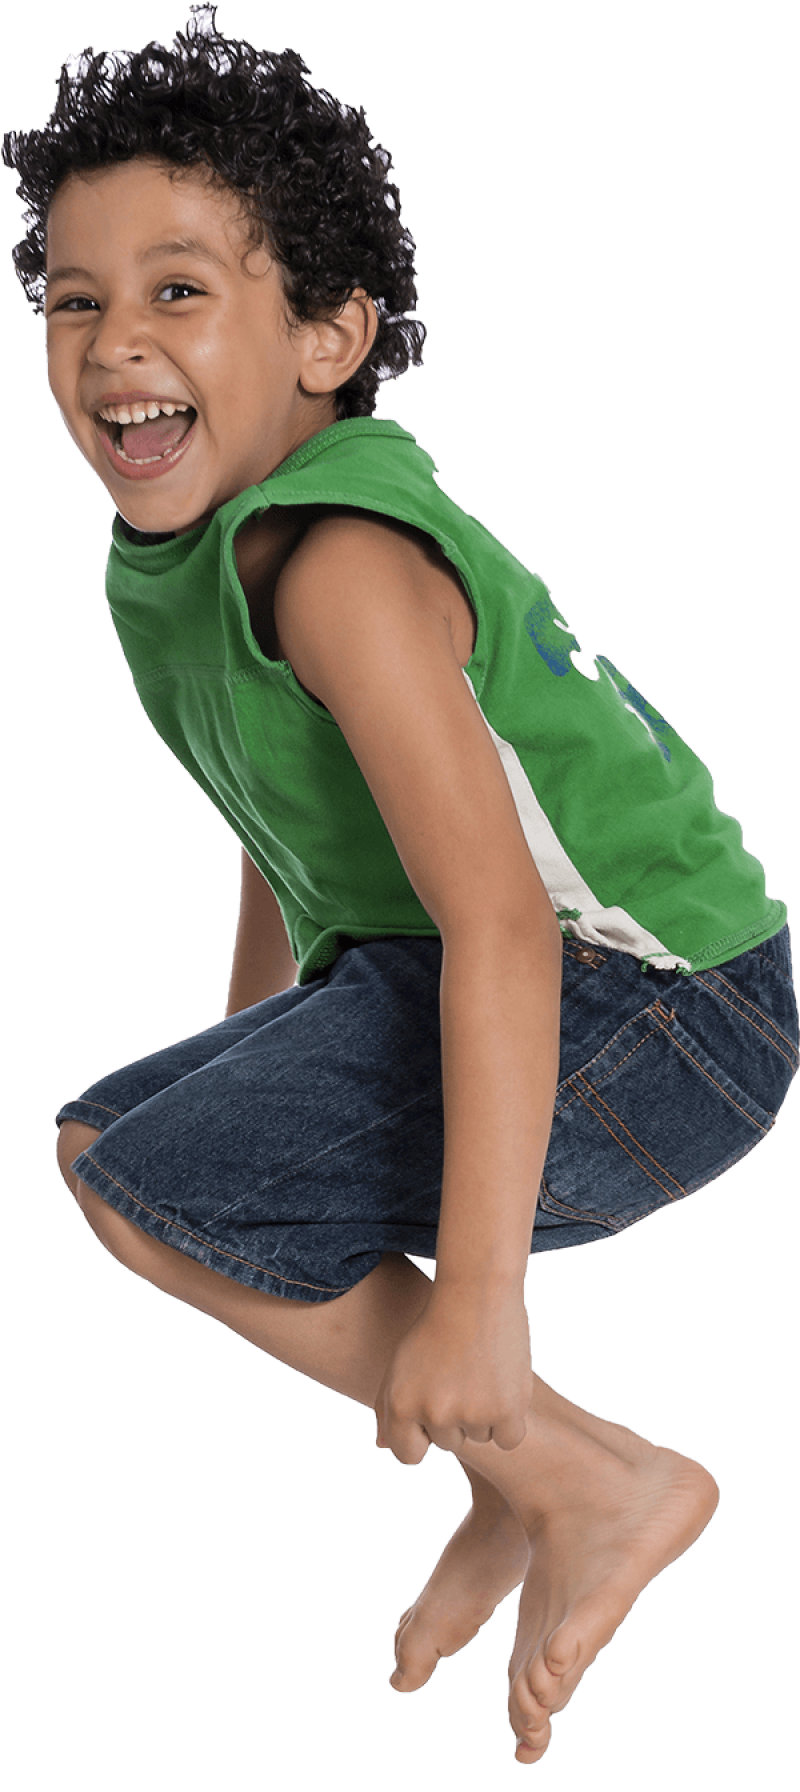 Child Png Image Purepng Free Transparent Cc0 Png Image Library Children Png Images Png